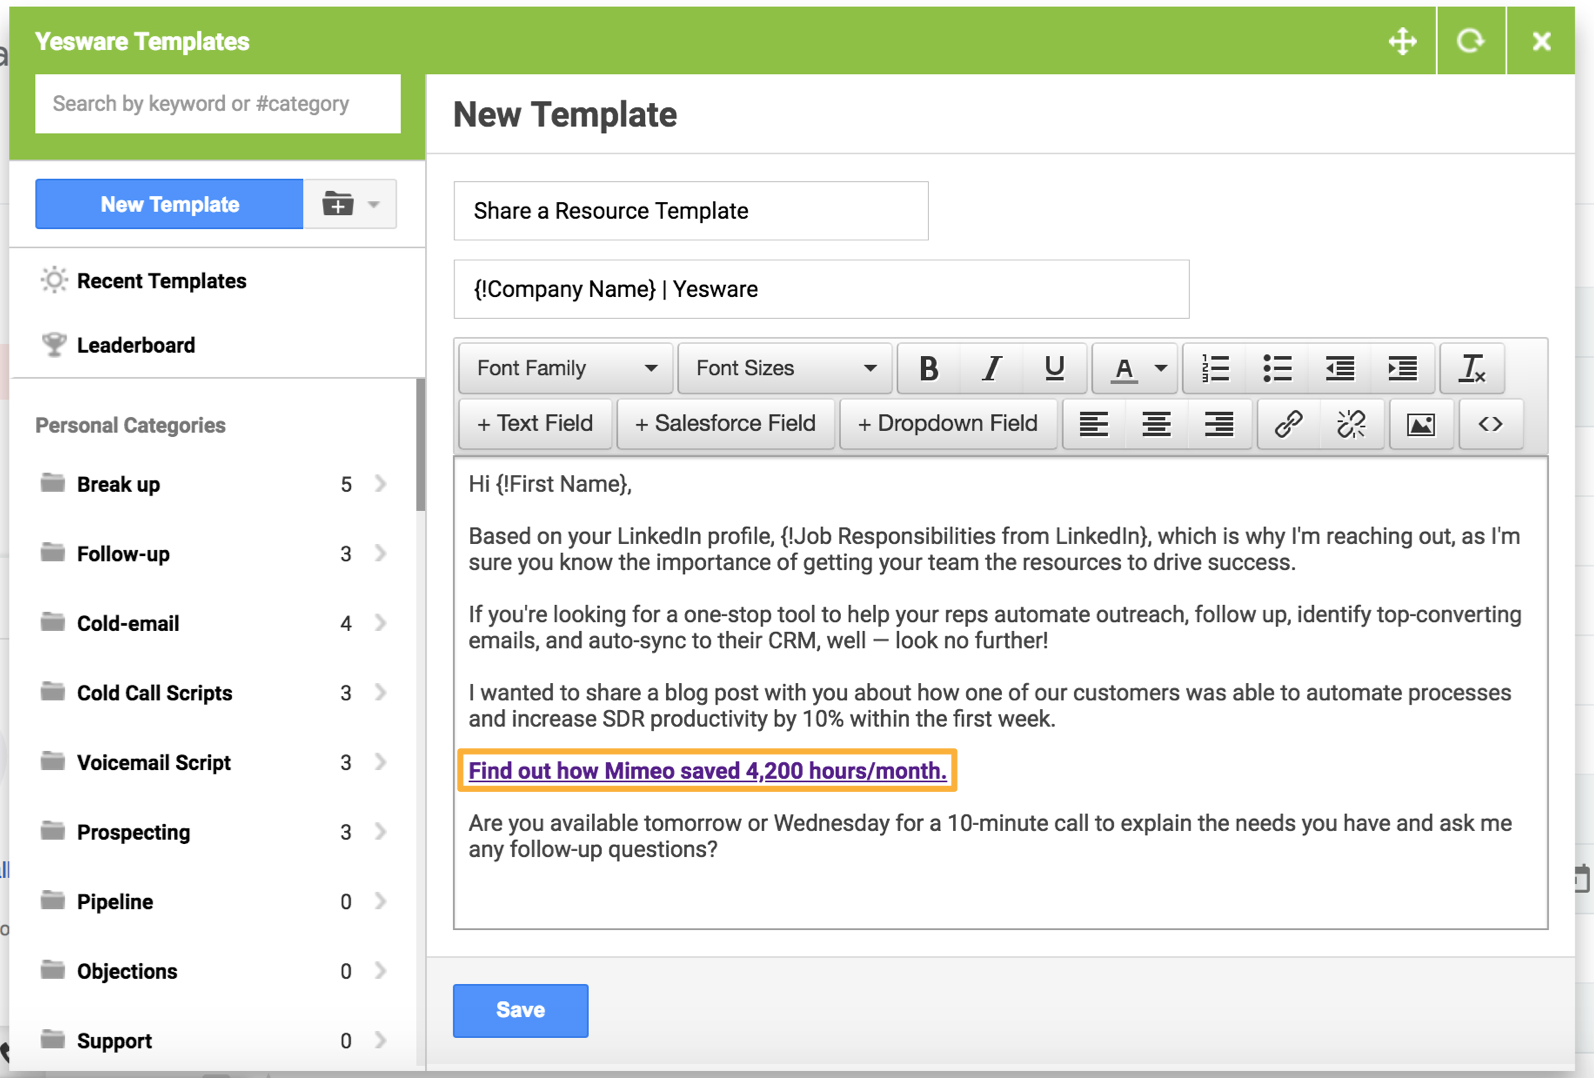 18 Ab Testing Email Ideas To Start Right Now With Confidence